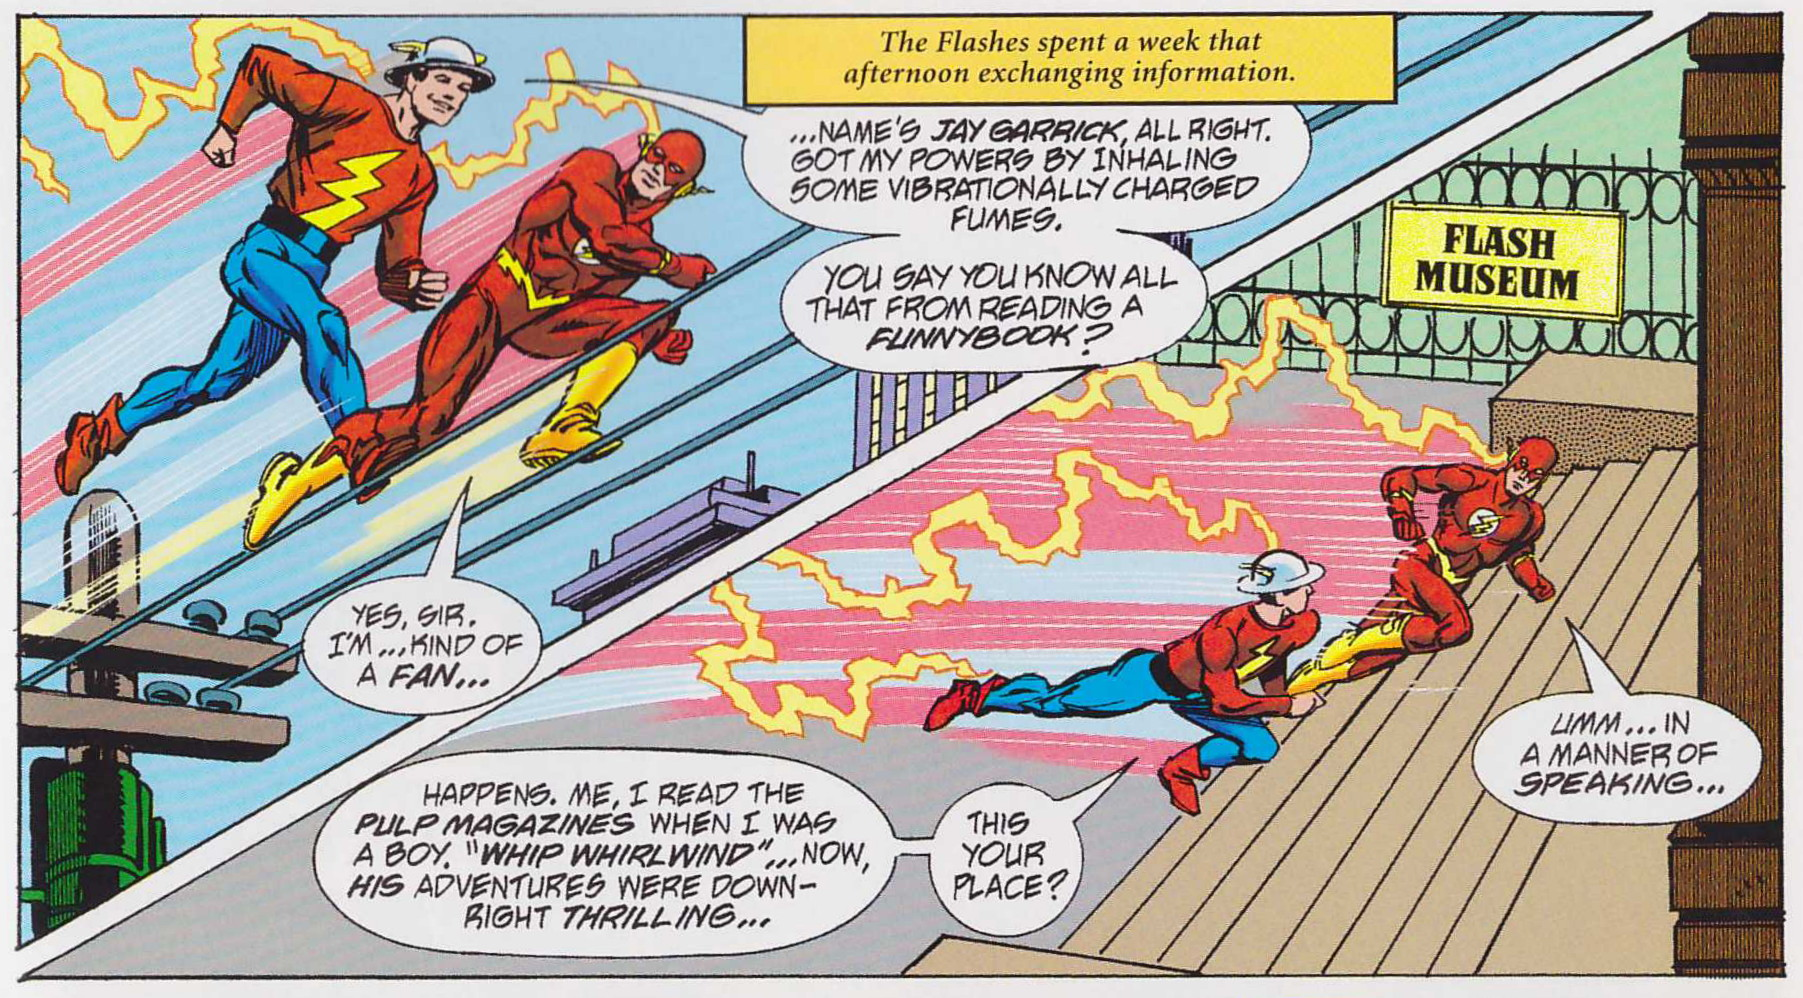 The Life Story of the Flash review